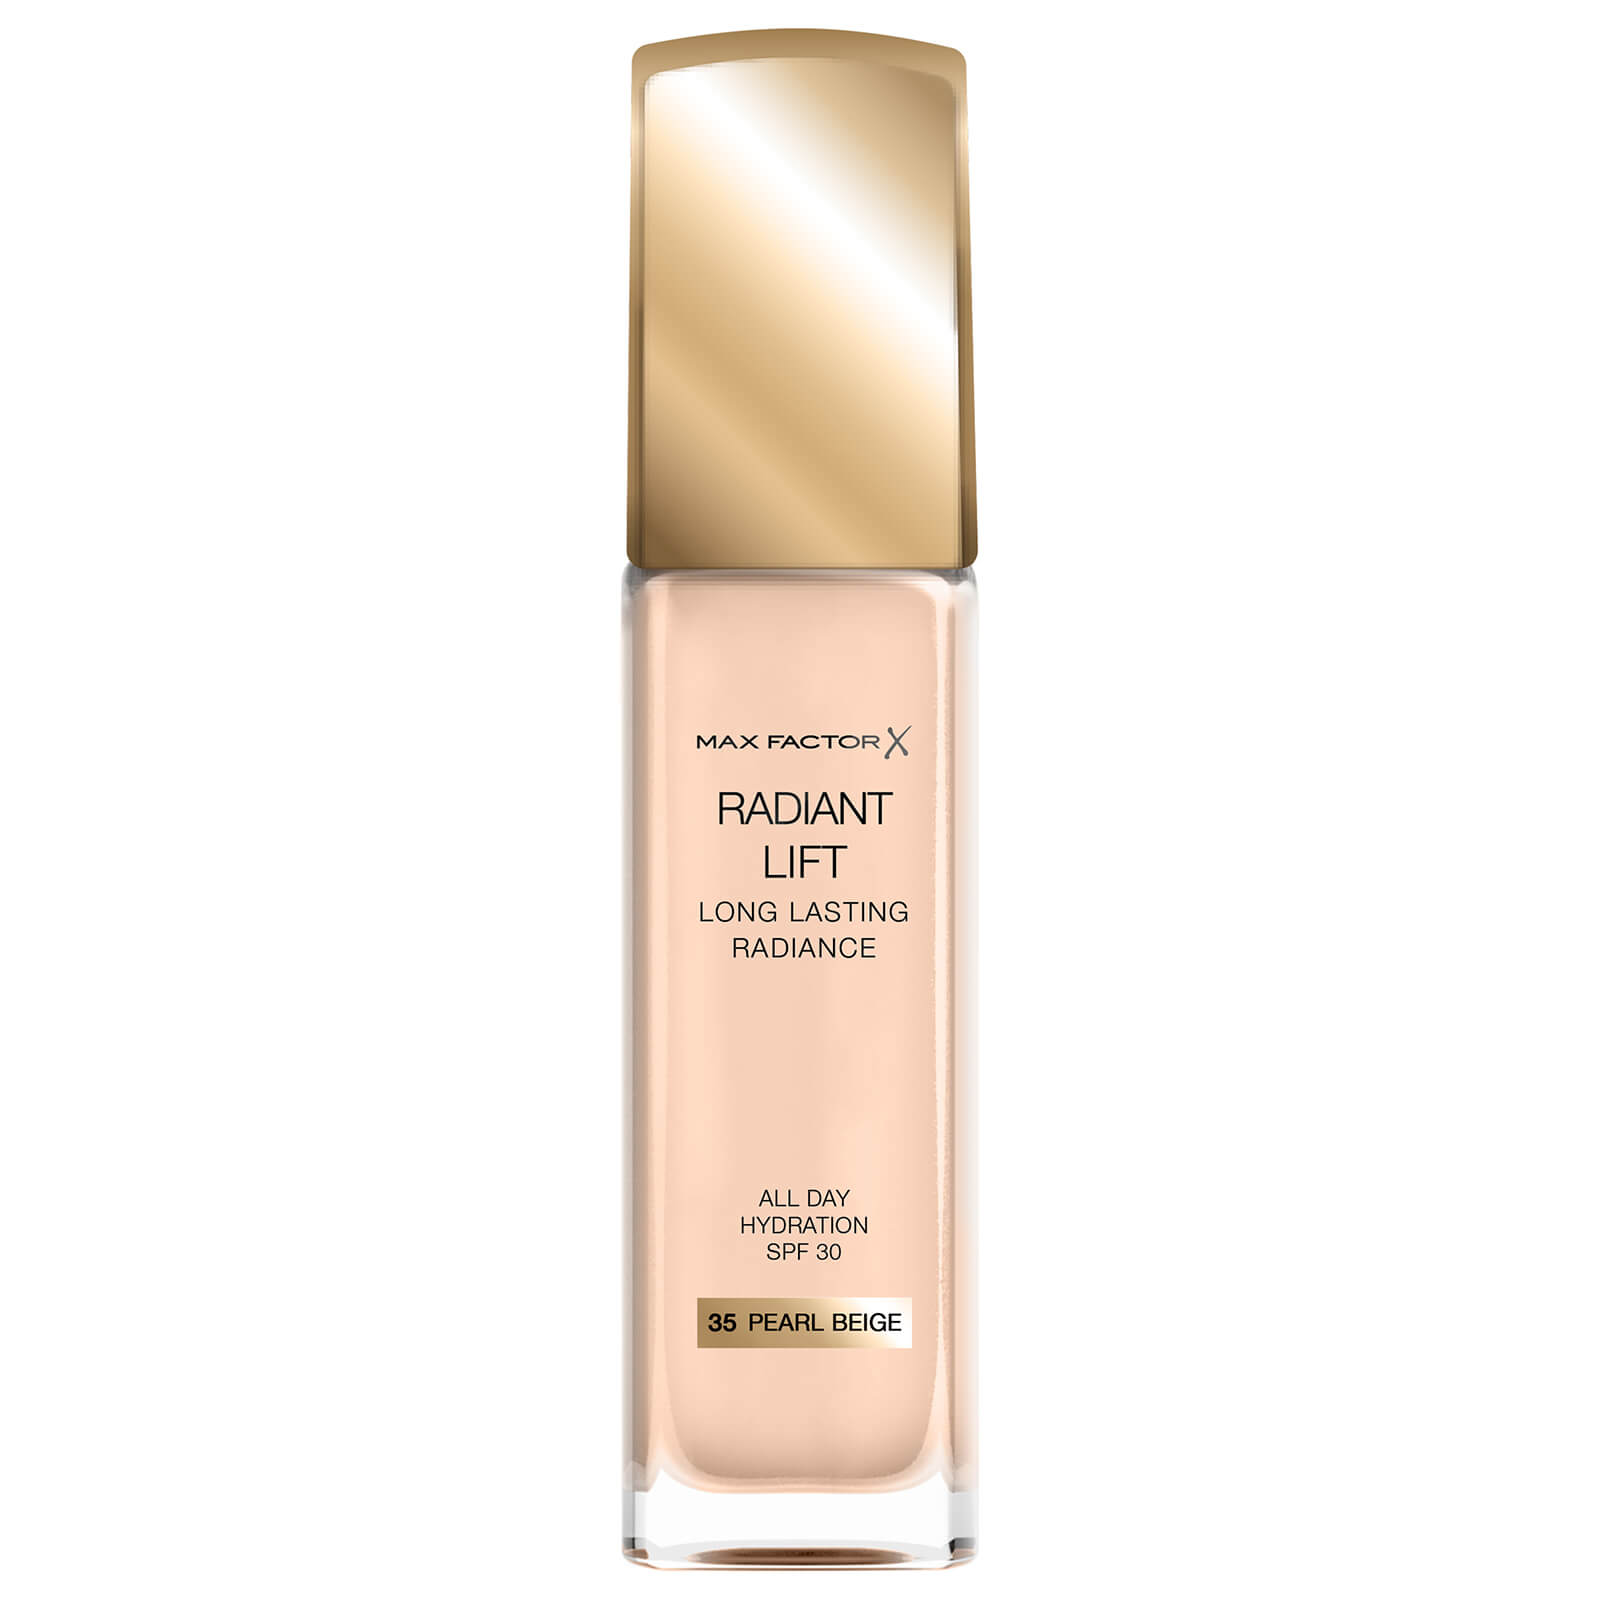 Max Factor Radiant Lift Foundation (Various Shades) - Pearl Beige